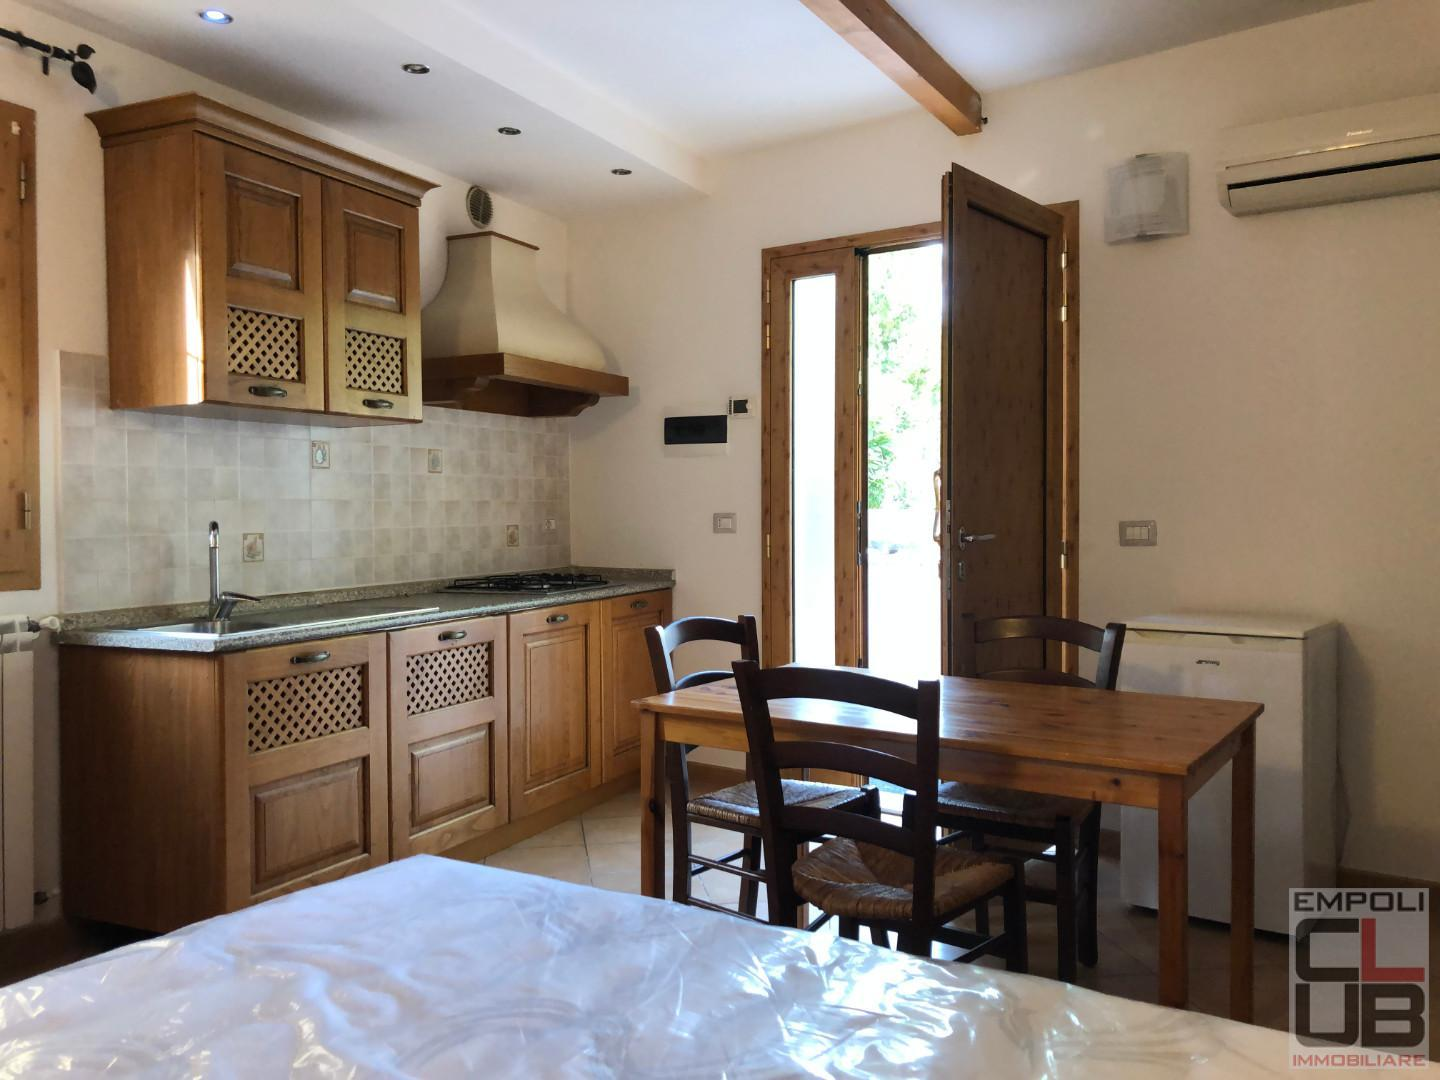 Portion of house for rent in Empoli (FI)